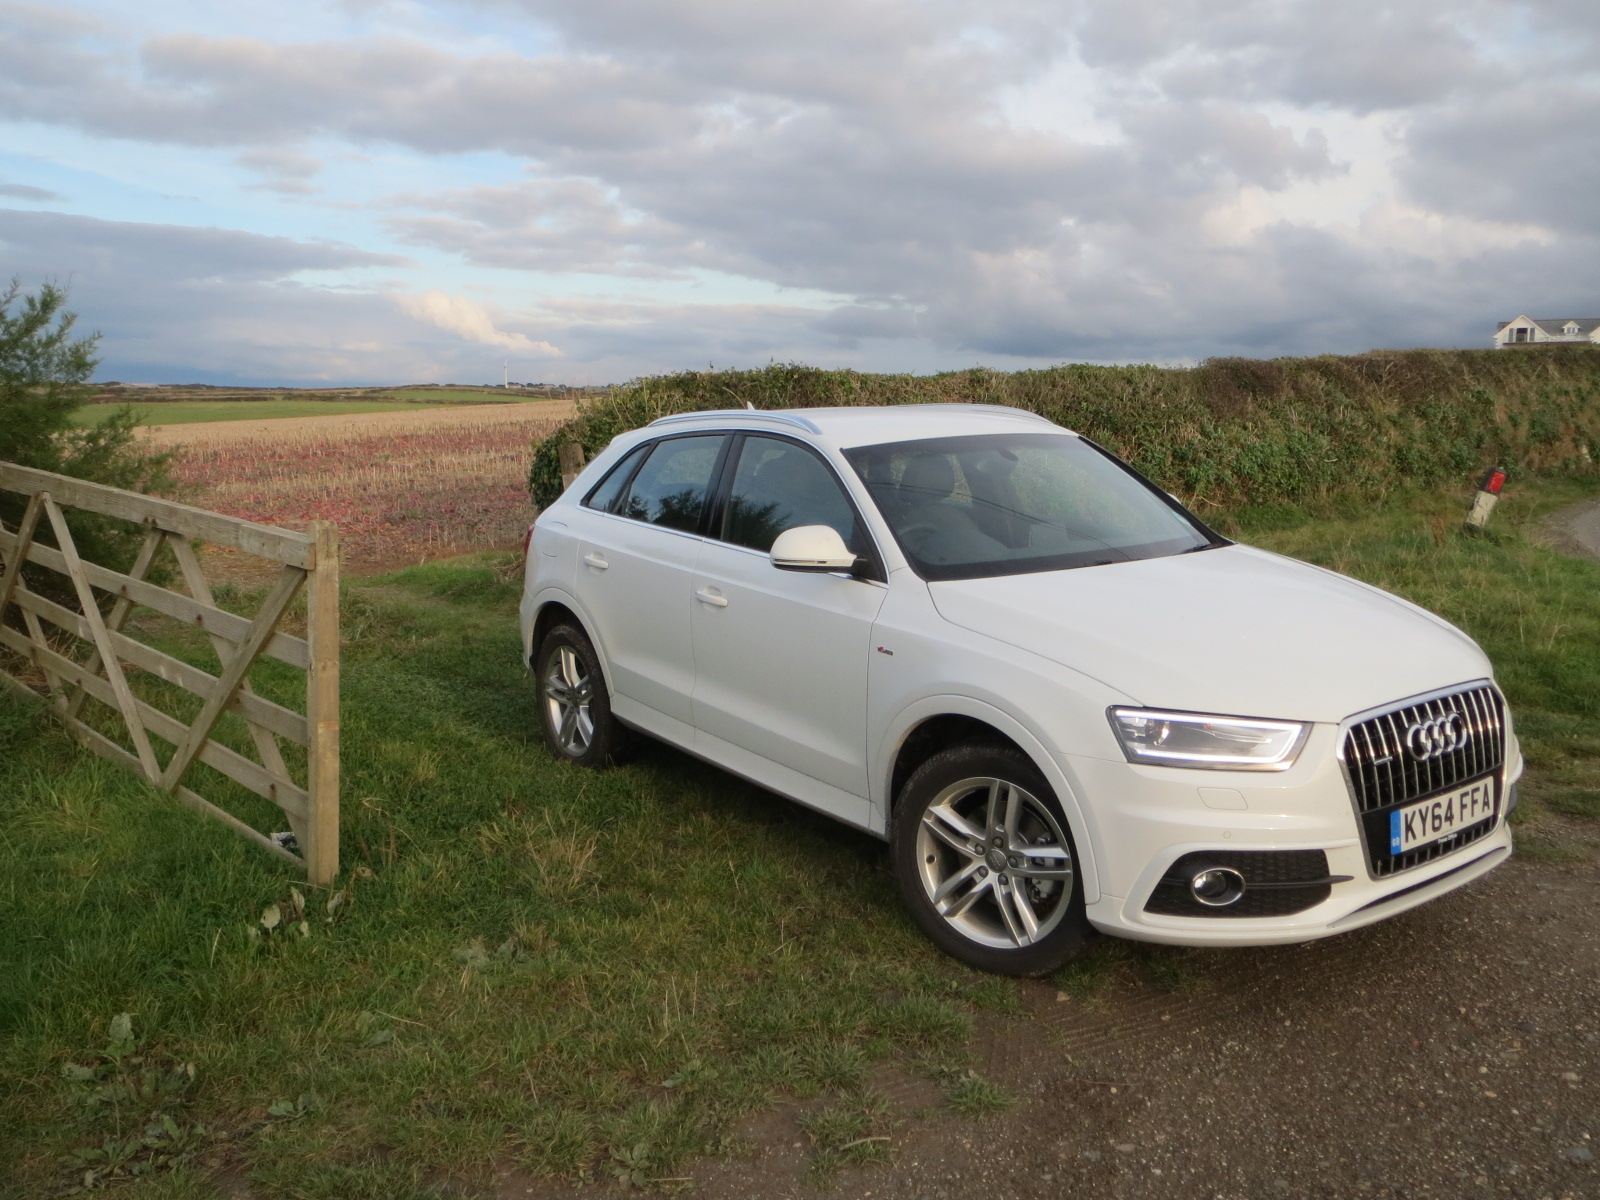 audi q3 tdi quattro s line 140 ps s tronic road test report and review. Black Bedroom Furniture Sets. Home Design Ideas